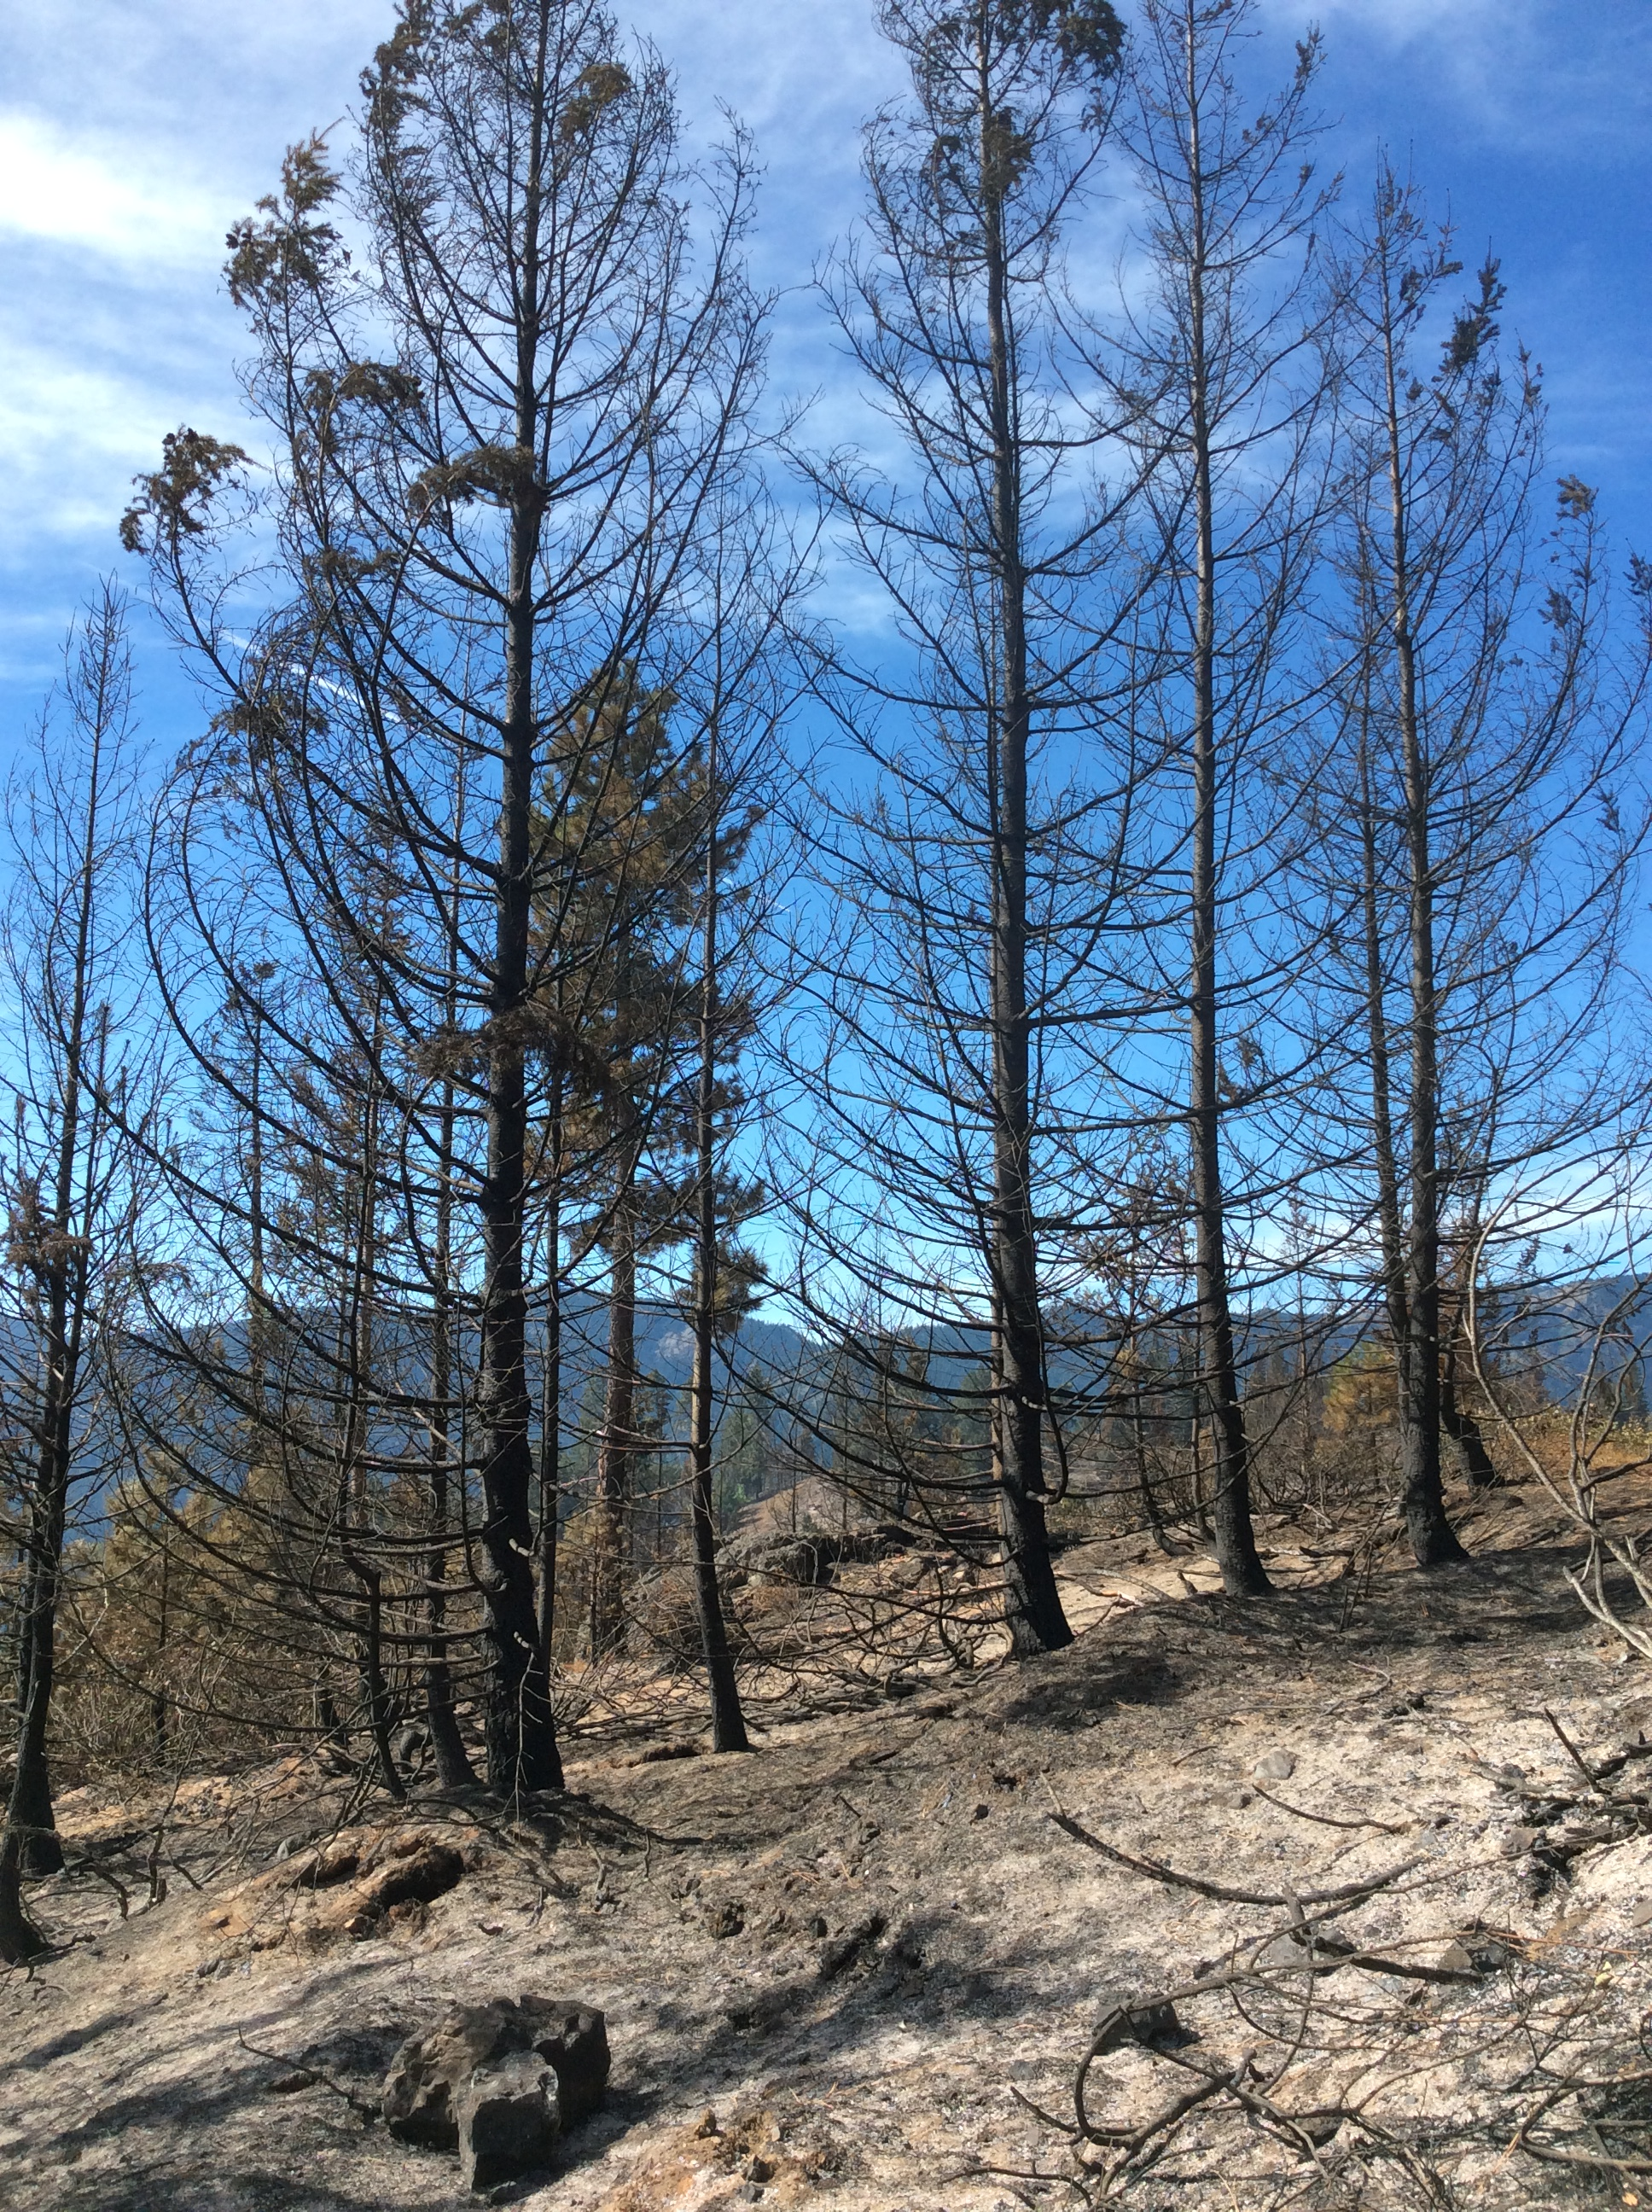 This area of the Morgan Unit thinned summer 2016 experienced a high severity burn. Photo © Brian Mize/TNC